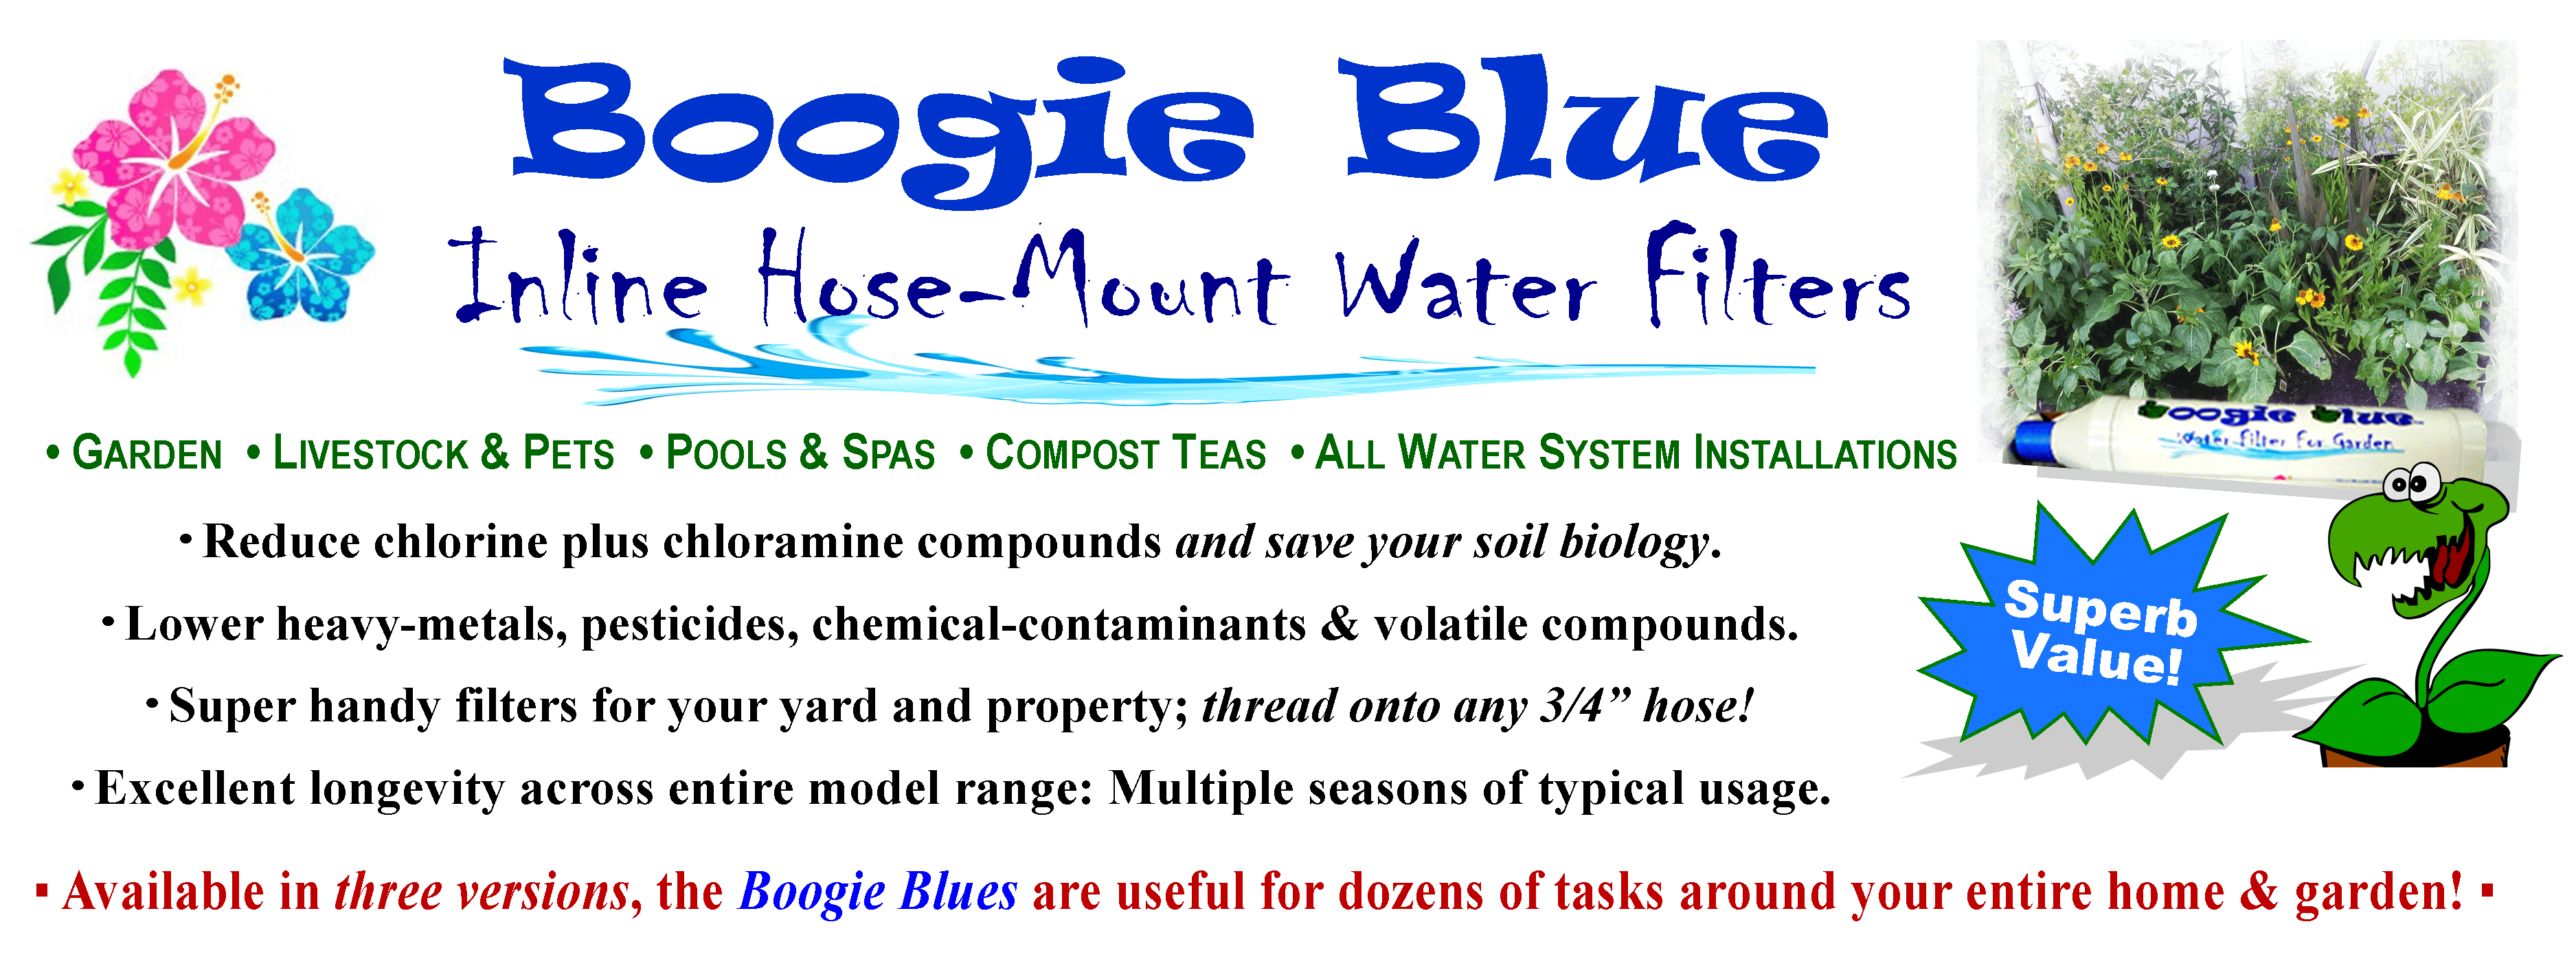 boogie blue filter banner sign 12.5x4.75 WHITE EXTENDED VBACKGROUND